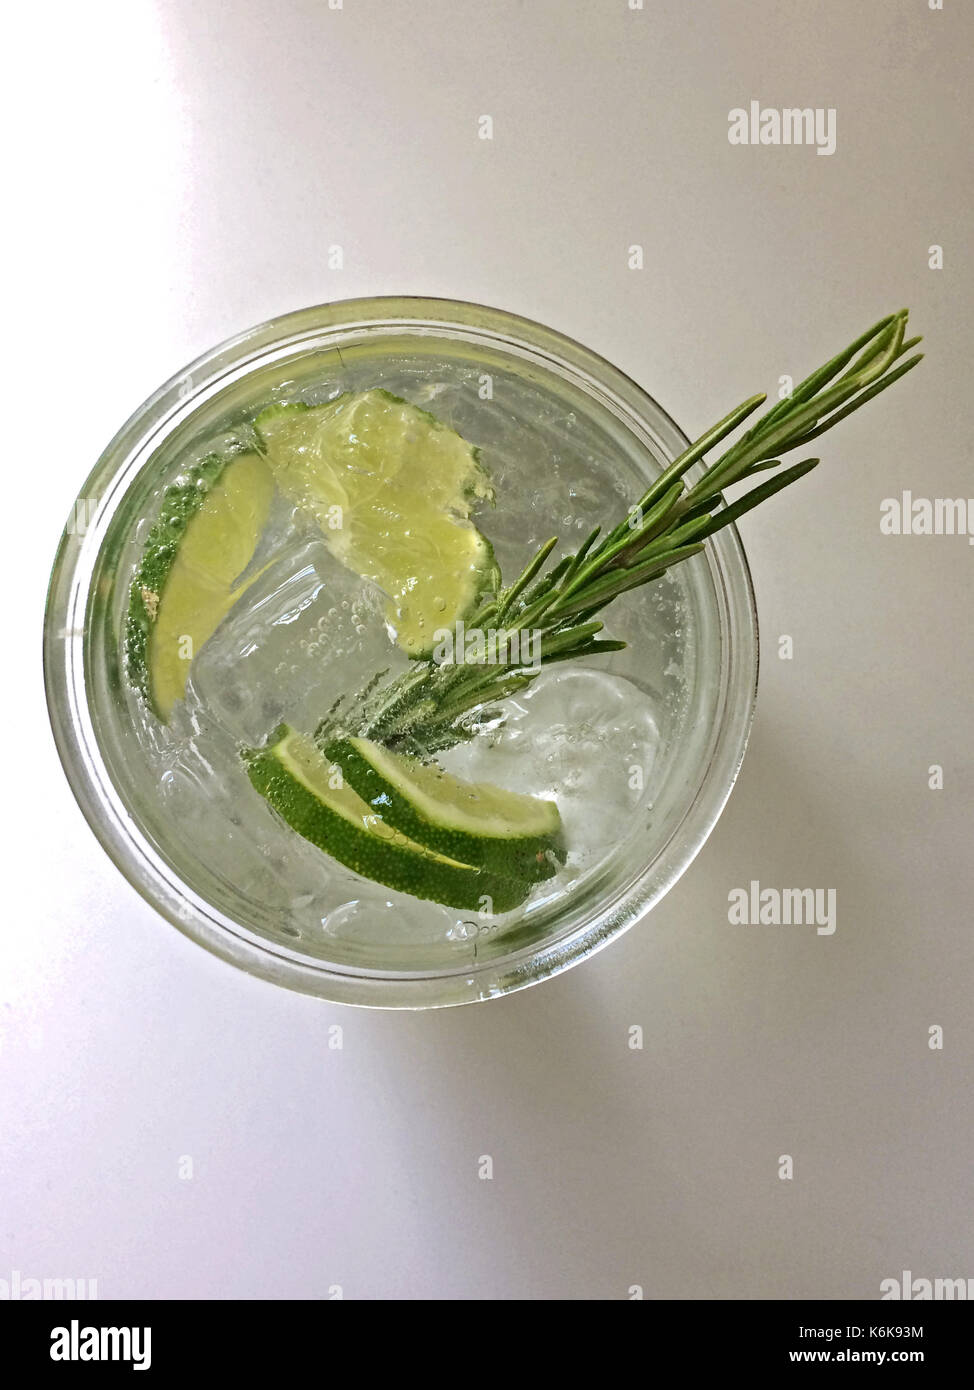 Classic Gin and Tonic cocktail with lime, lemon & rosemary - Stock Image